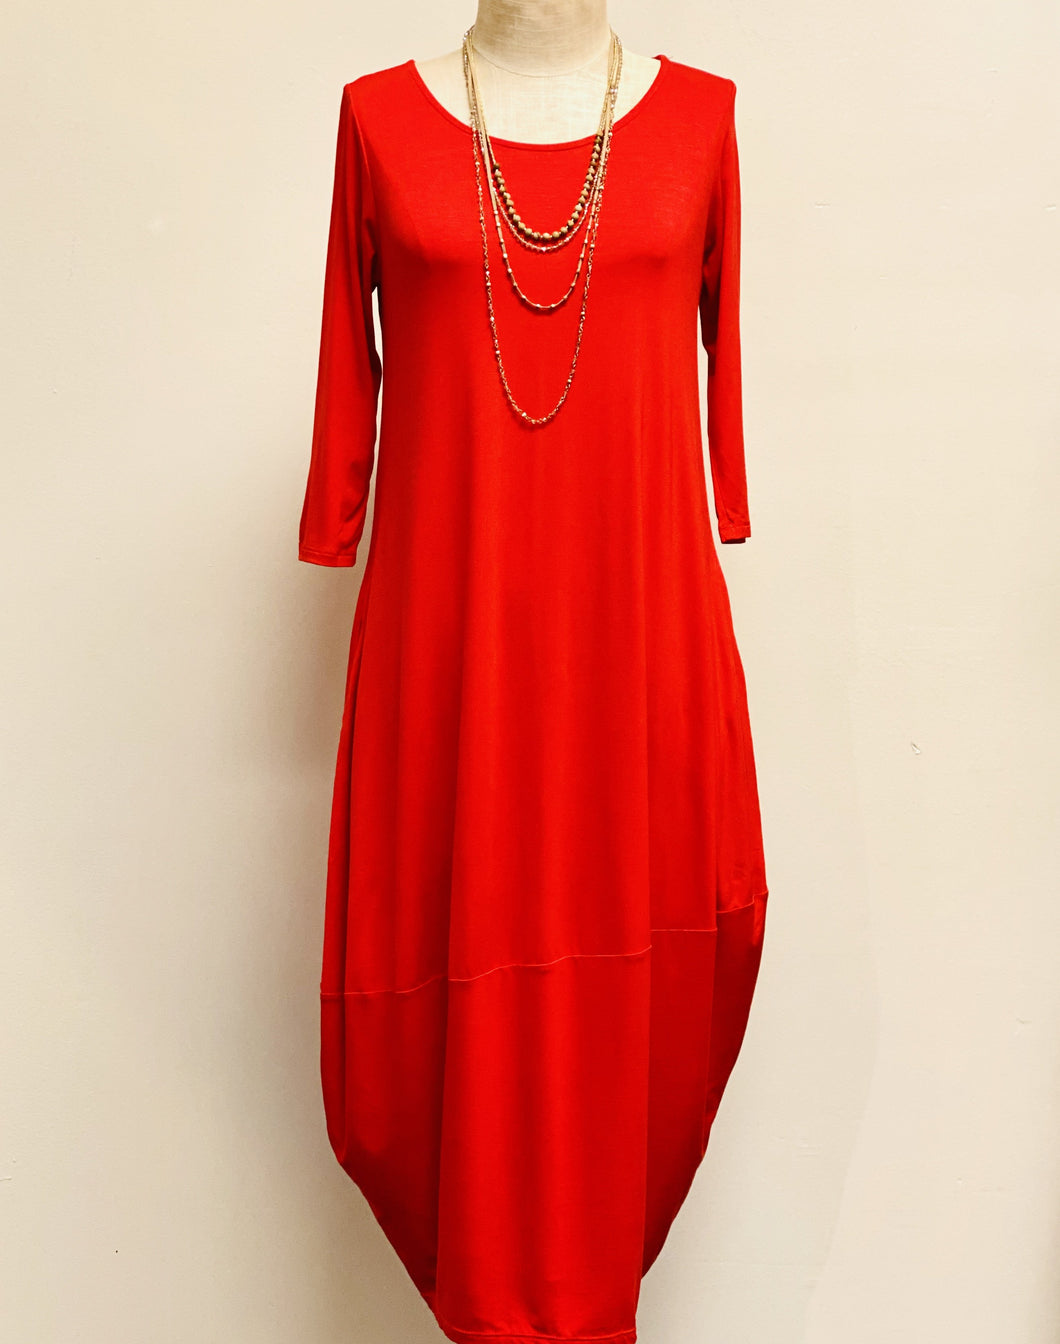 Long Sleeve All Occasion Dress